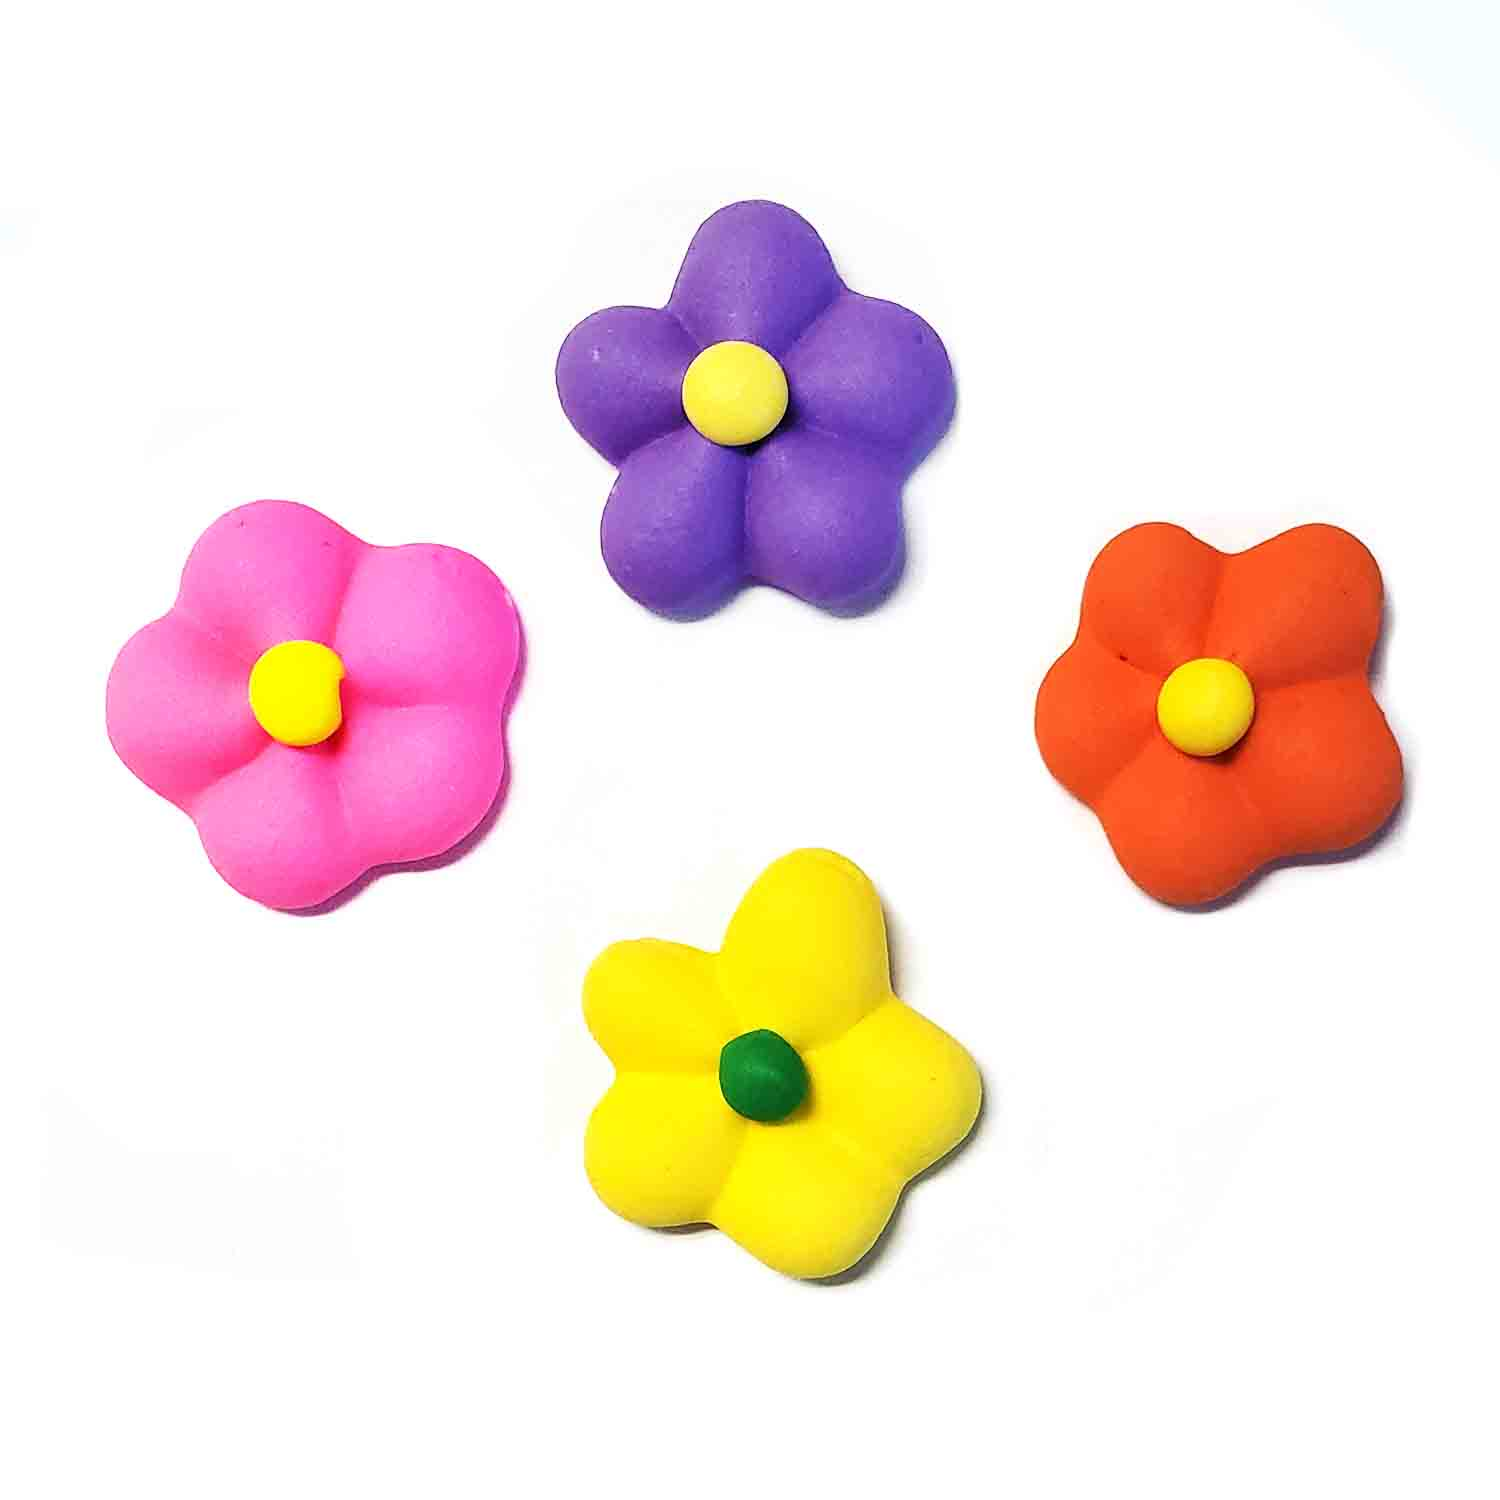 Icing Layons - Flower Power